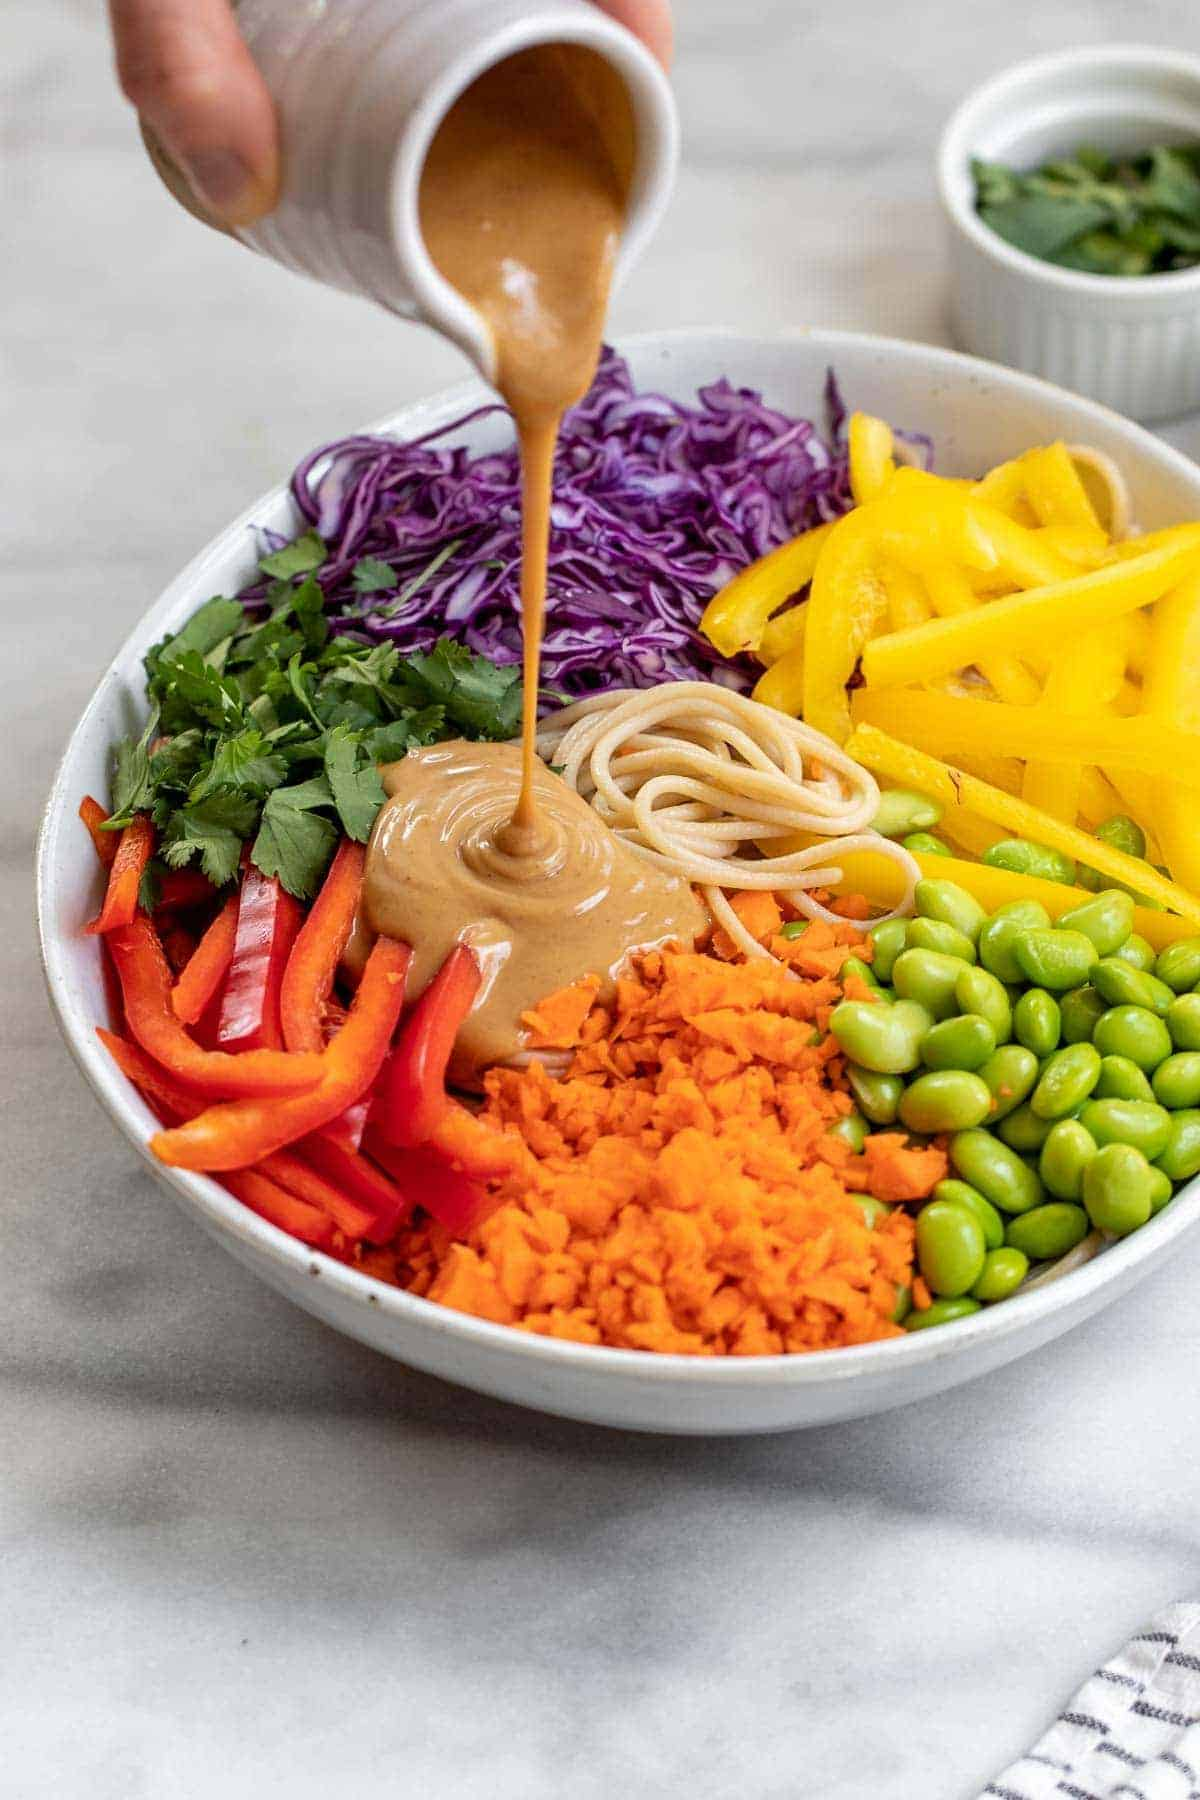 Pouring the thai peanut sauce over the noodles and veggies.